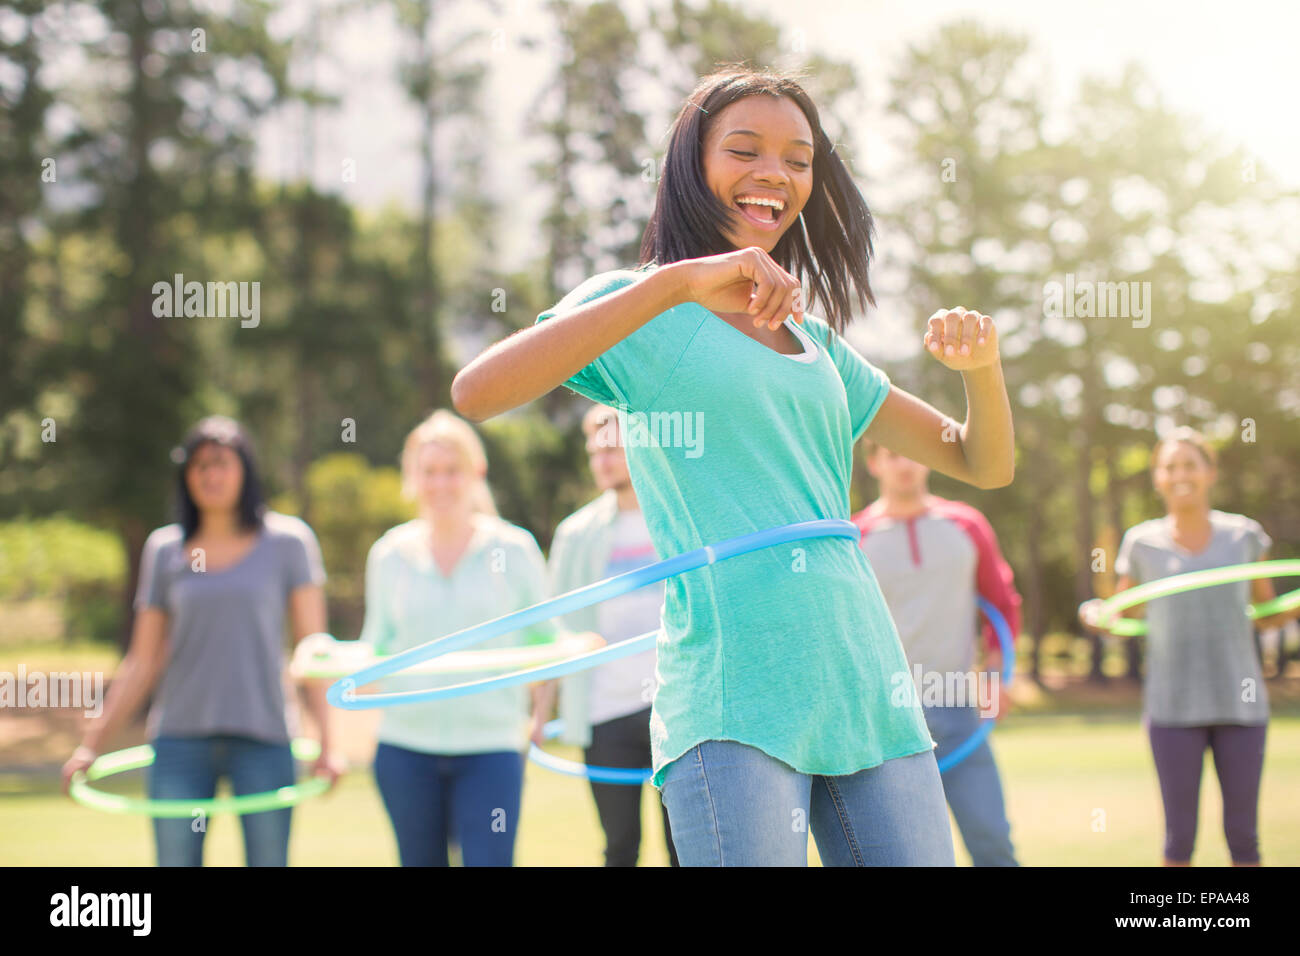 enthusiasm woman spinning plastic hoop - Stock Image